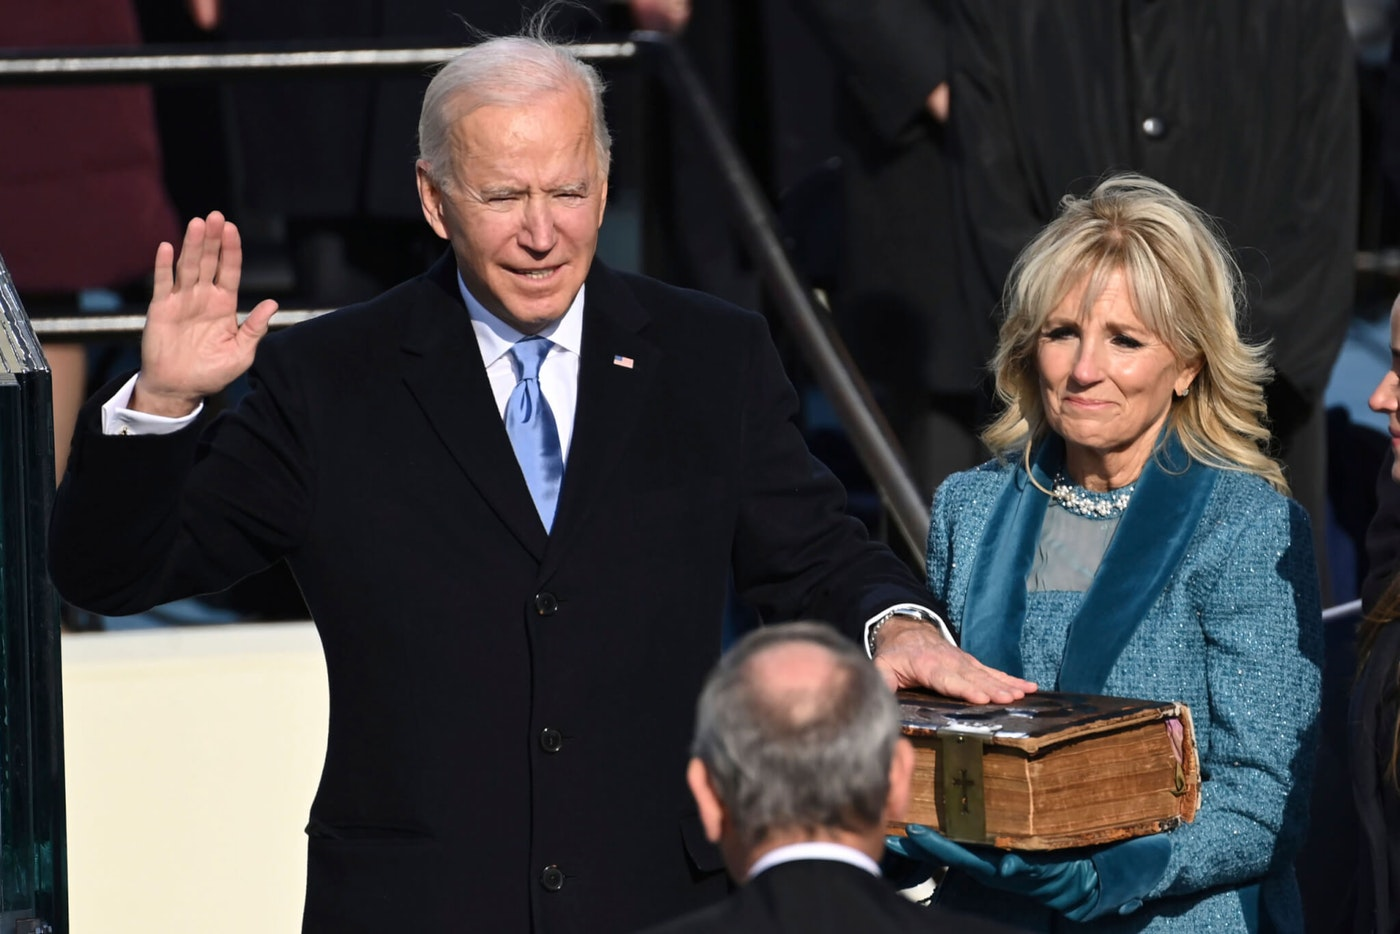 Joe Biden is sworn in as the 46th president of the United States by Chief Justice John Roberts as Jill Biden holds the Bible during the 59th Presidential Inauguration at the US Capitol in Washington, Wednesday, Jan. 20, 2021. (Agence France-Presse Photo via AP/Saul Loeb)